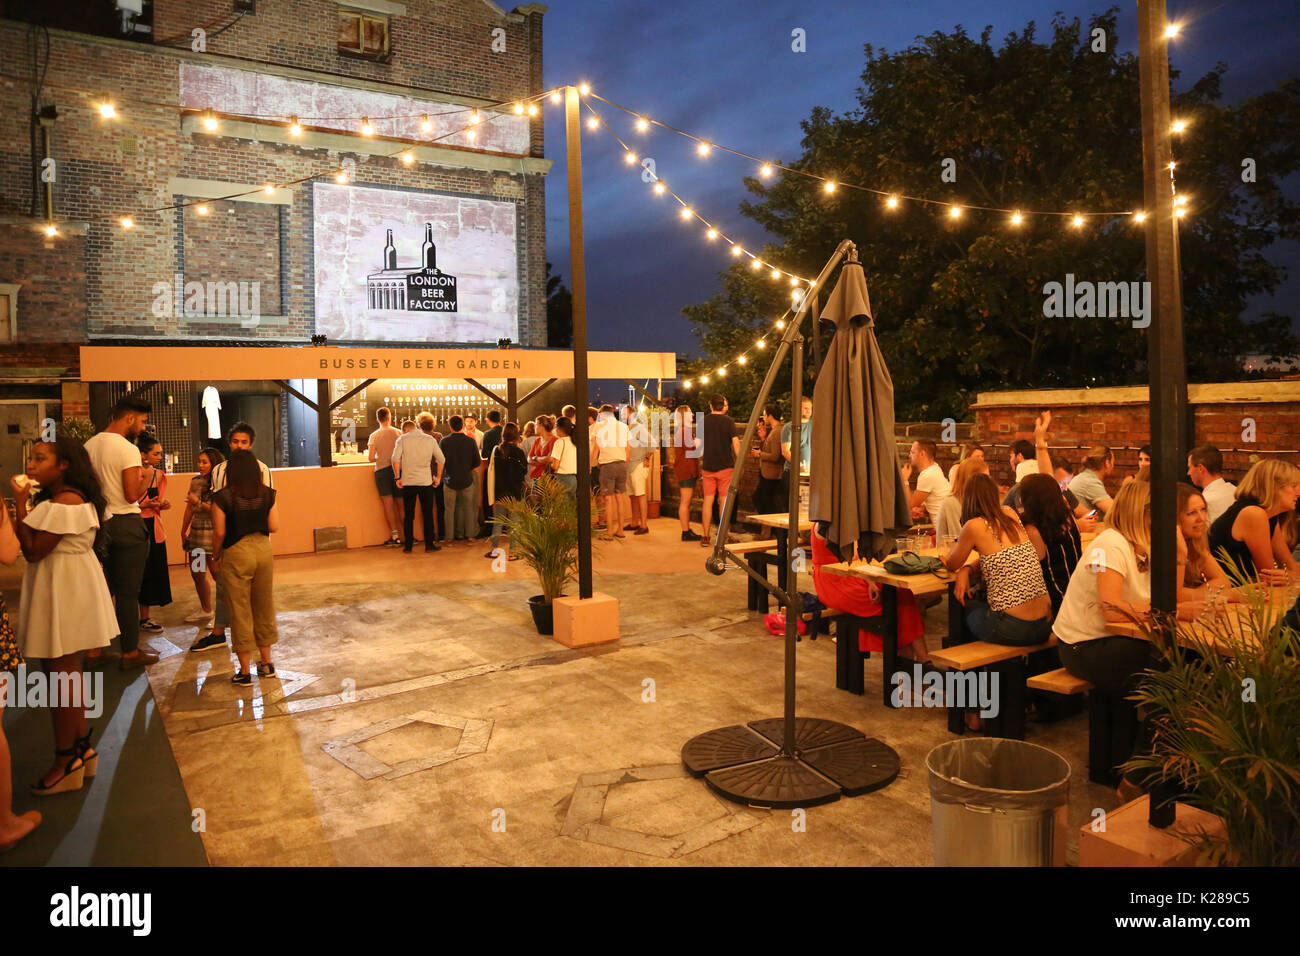 Roof Top Cafe Stock Photos & Roof Top Cafe Stock Images - Alamy